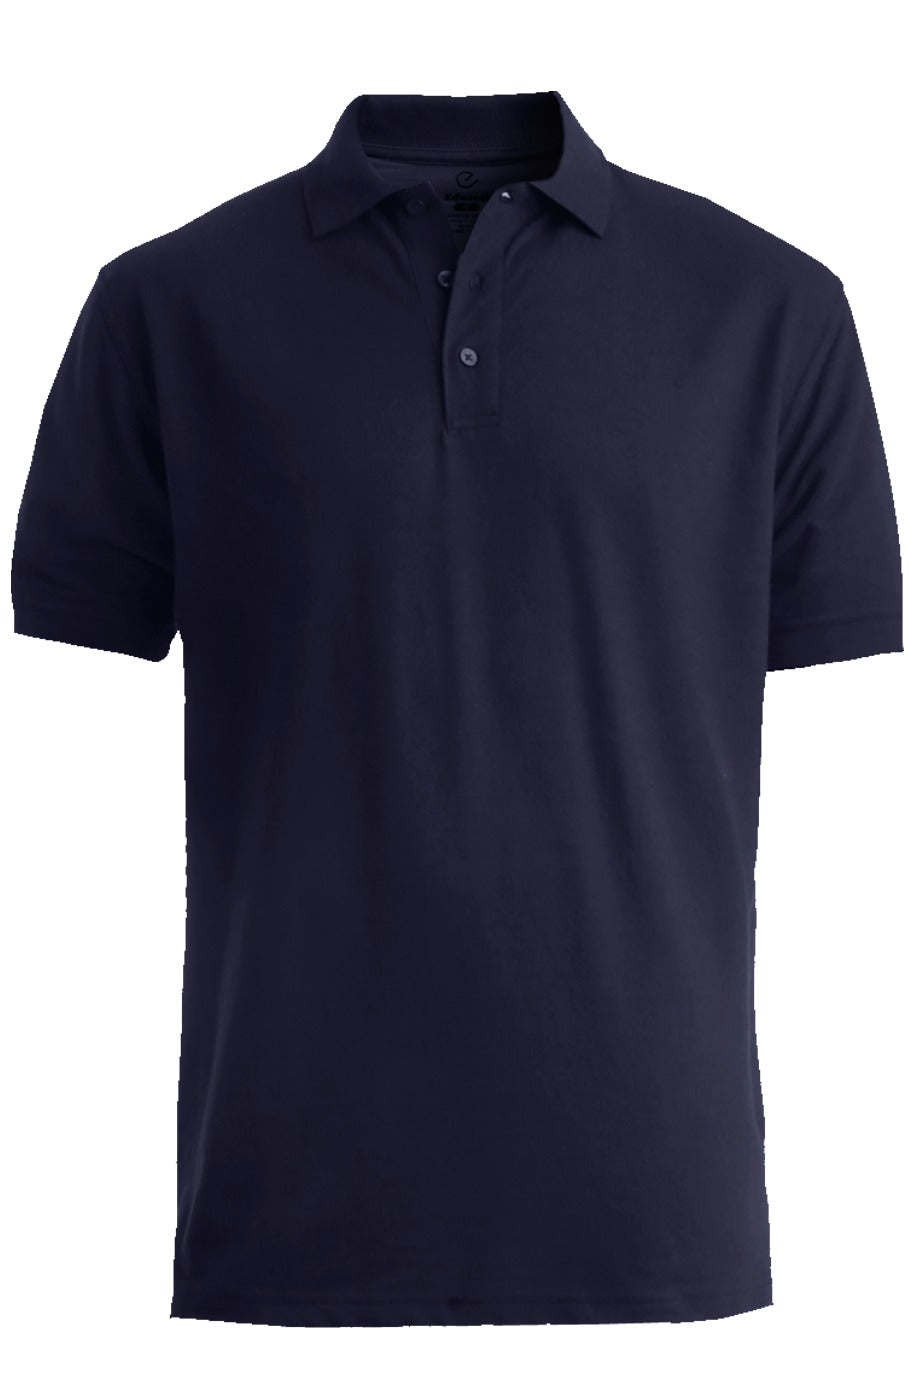 Men's Navy Pique Polo